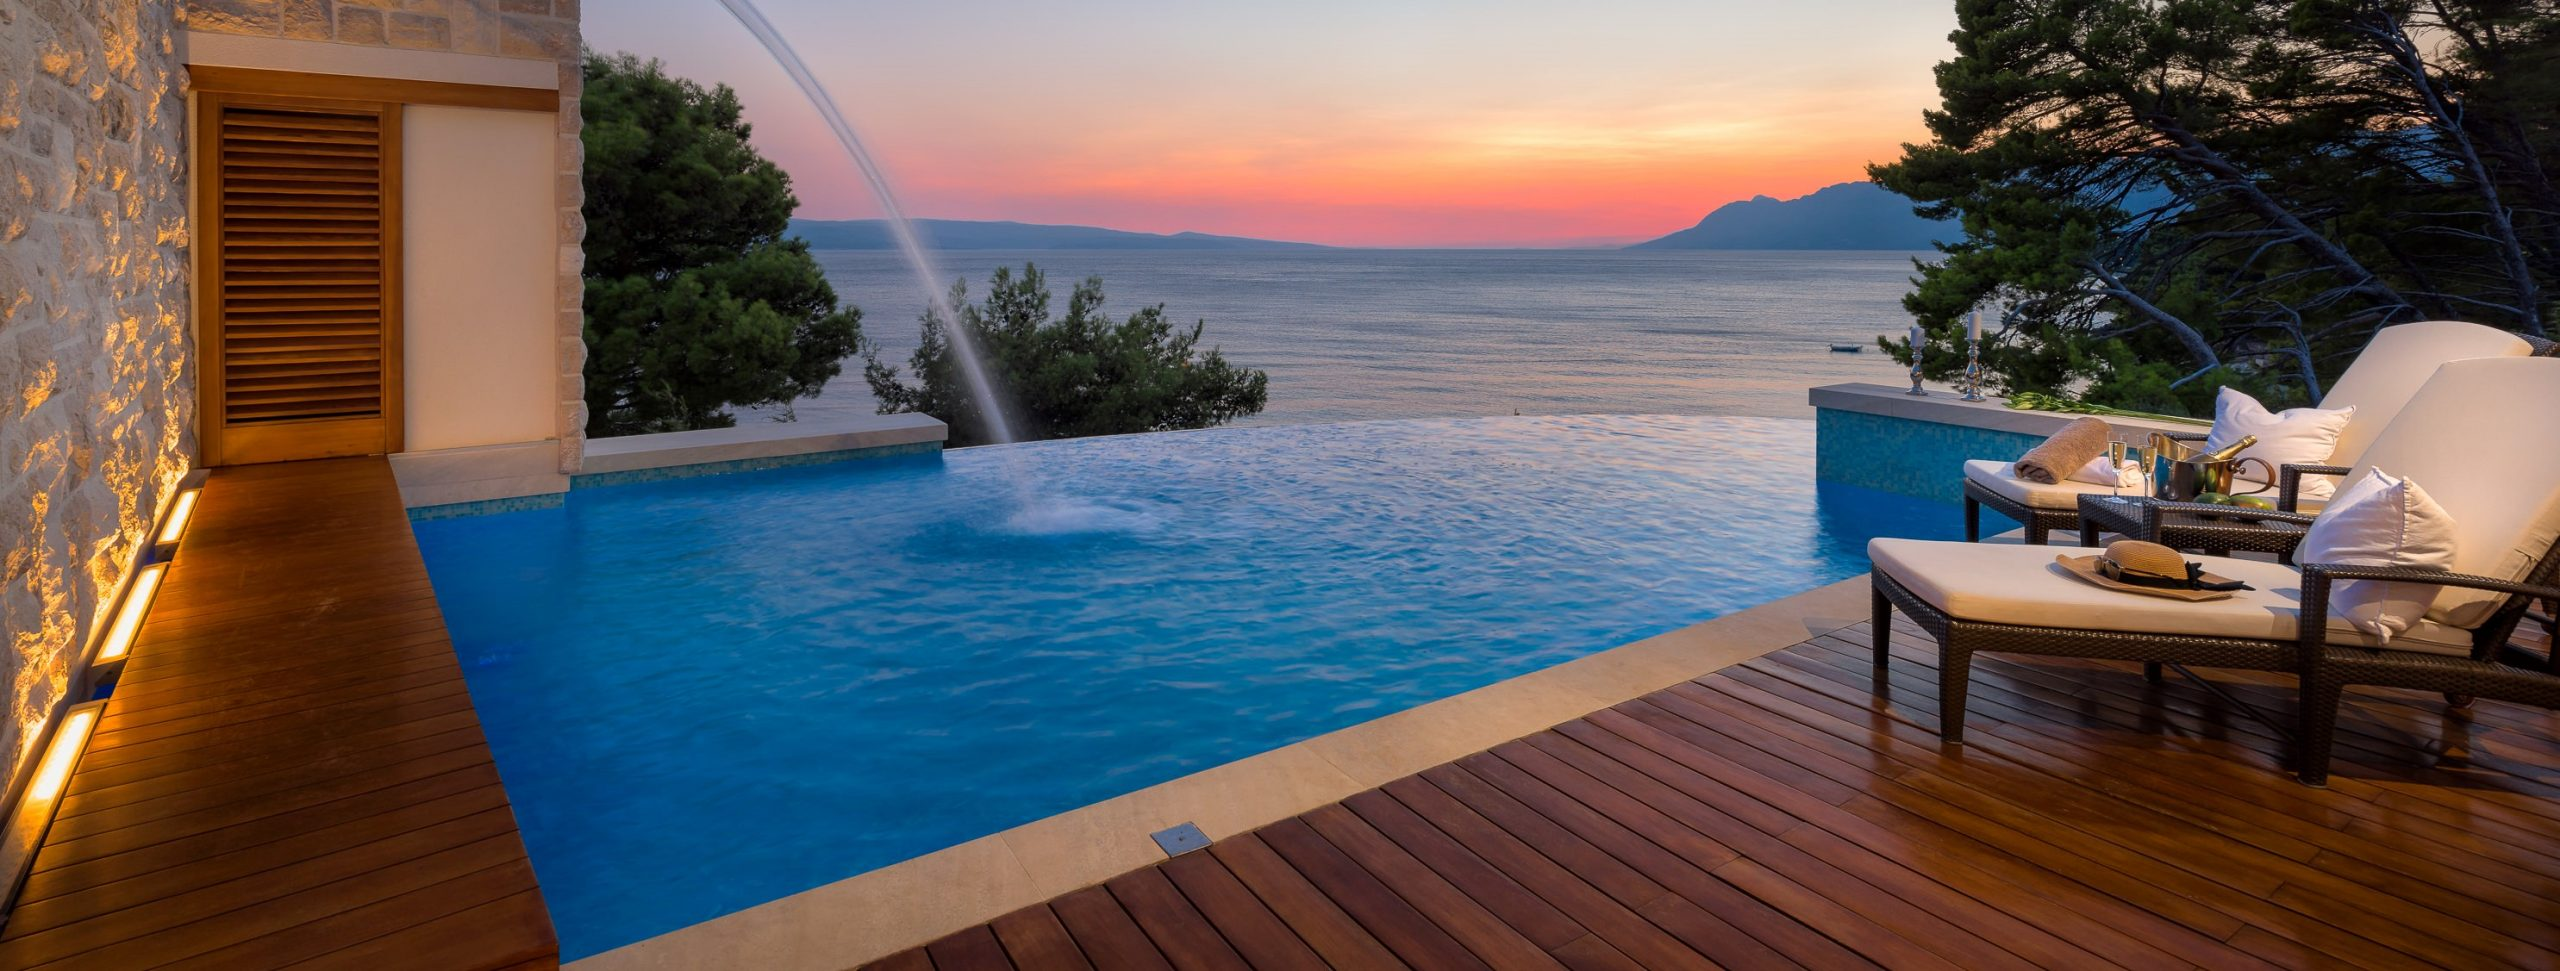 Villa Dalmatia Luxury